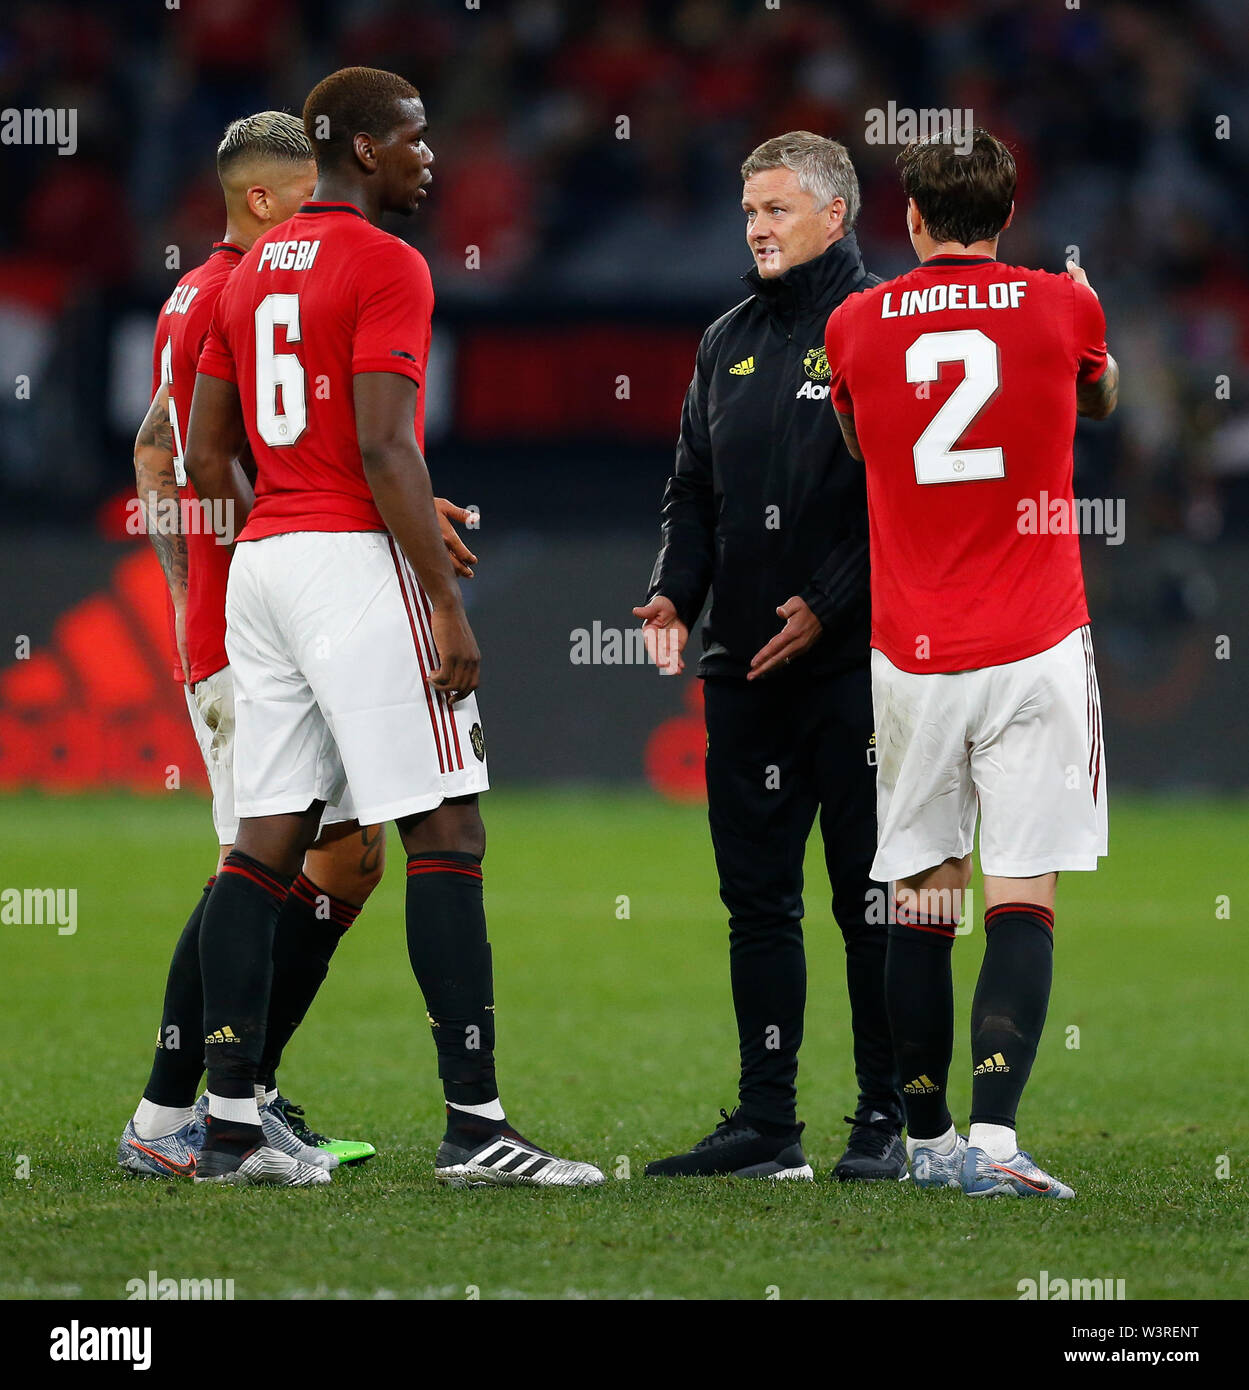 Optus Stadium, Burswood, Perth, W Australia. 17th July 2019. Manchester United versus Leeds United; pre-season tour; Ole Gunnar Solskjaer Manager of Manchester United talks to Paul Pogba Victor Lindelof and Marcos Rojo during the half time break Credit: Action Plus Sports Images/Alamy Live News Stock Photo